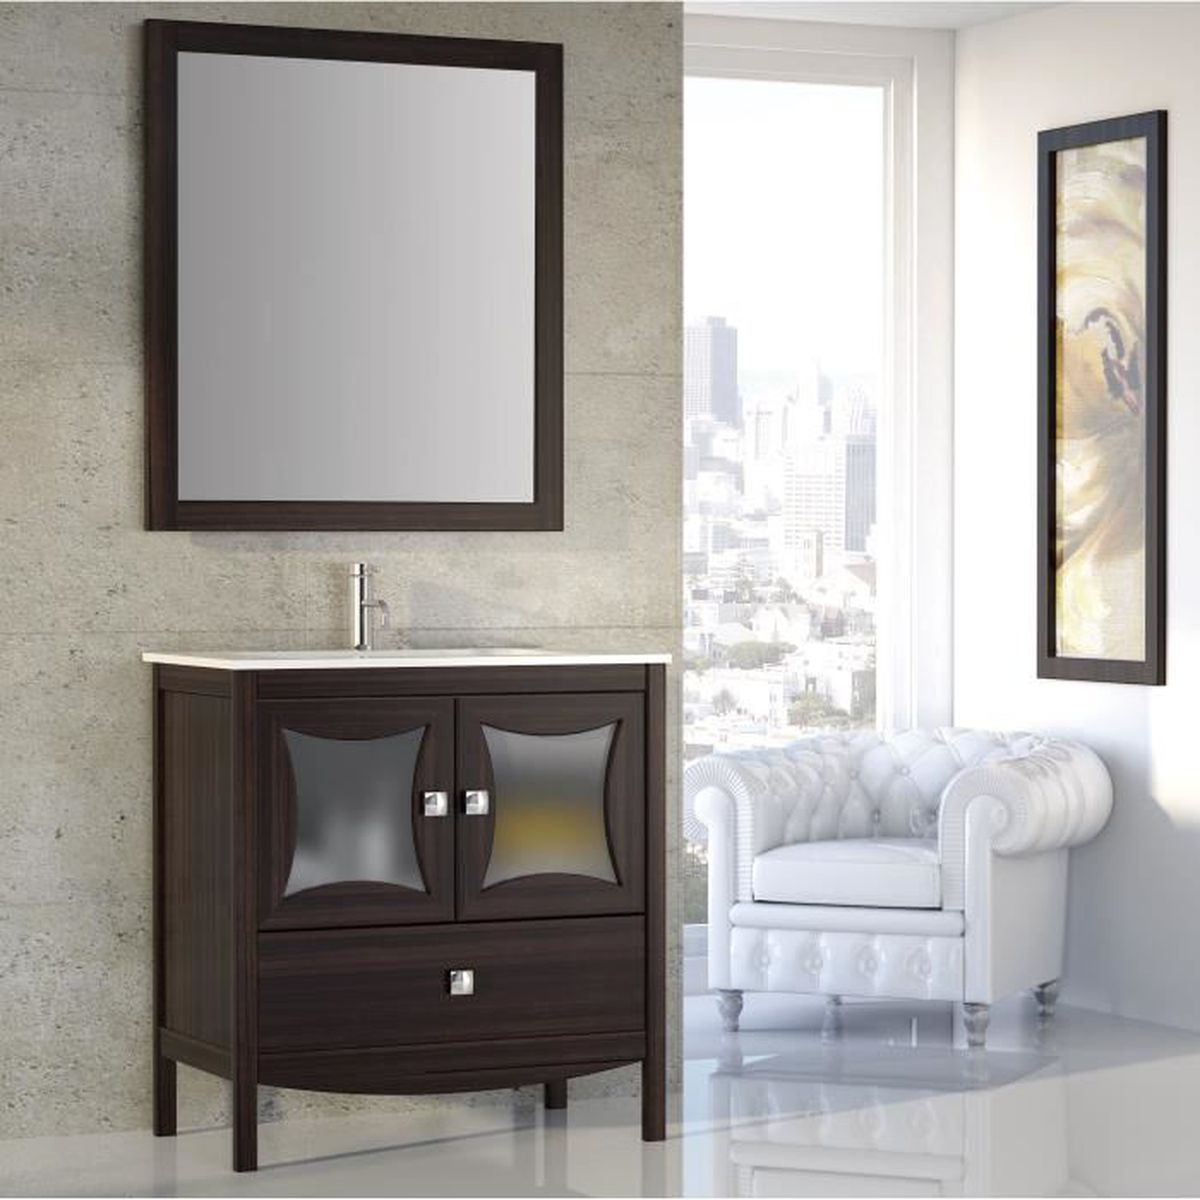 meuble sous vasque complet oferti 100cm achat vente salle de bain complete meuble sous. Black Bedroom Furniture Sets. Home Design Ideas